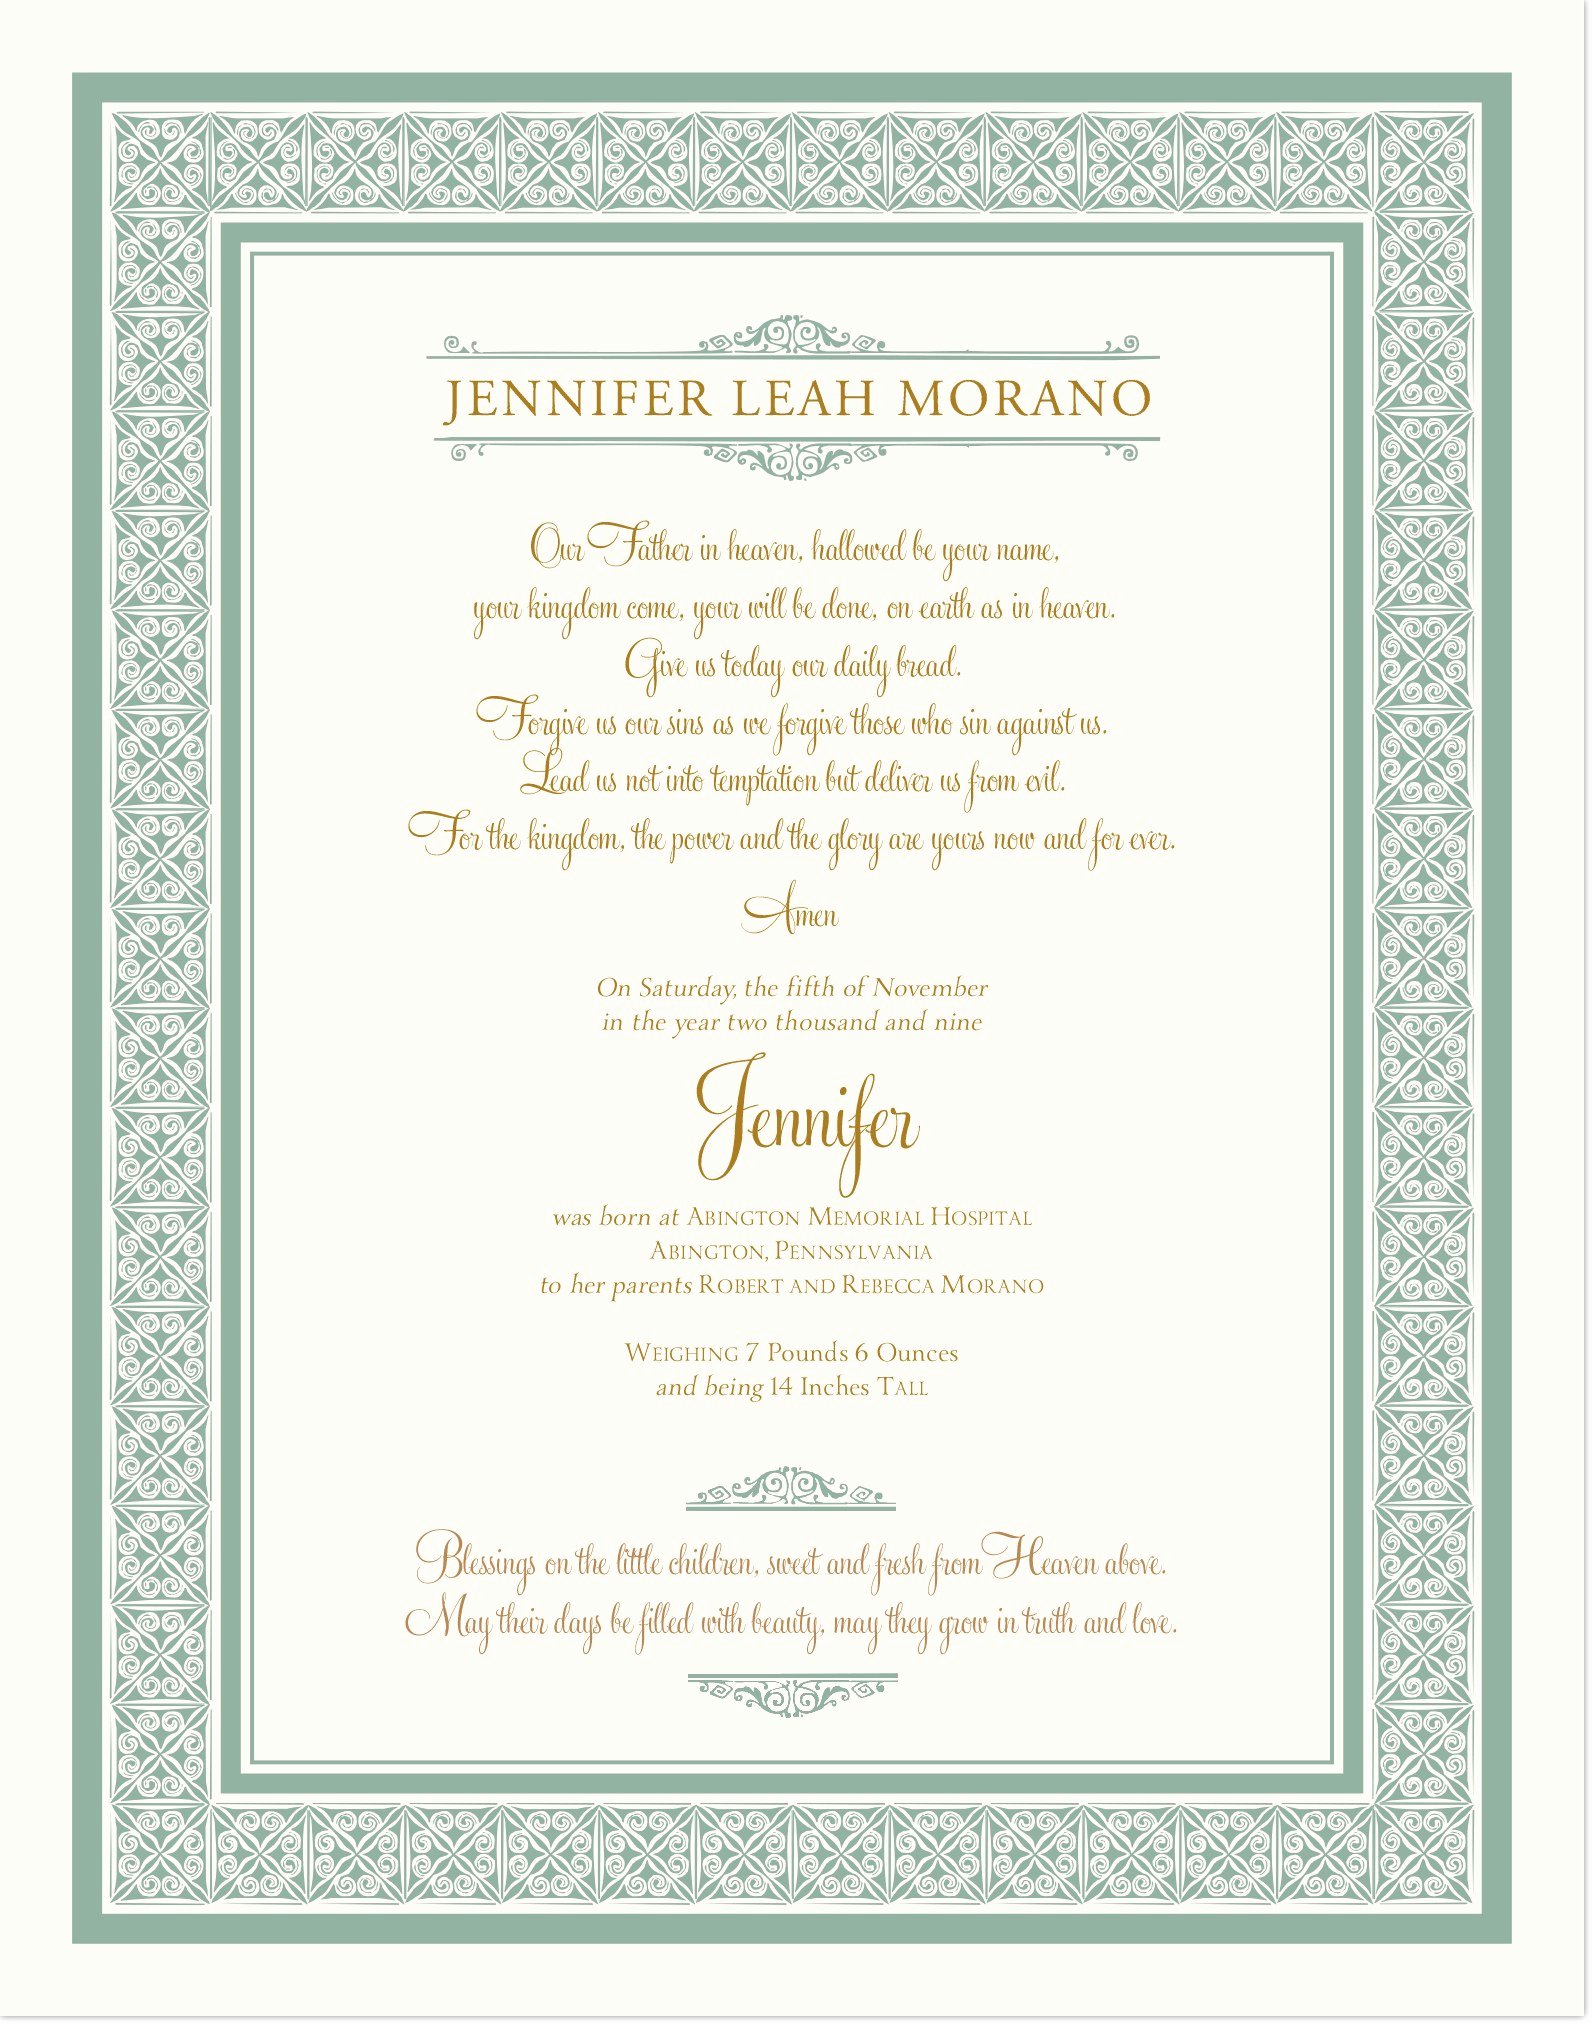 Baby Christening Certificate Template Beautiful Birth Certificate Christening Certificate